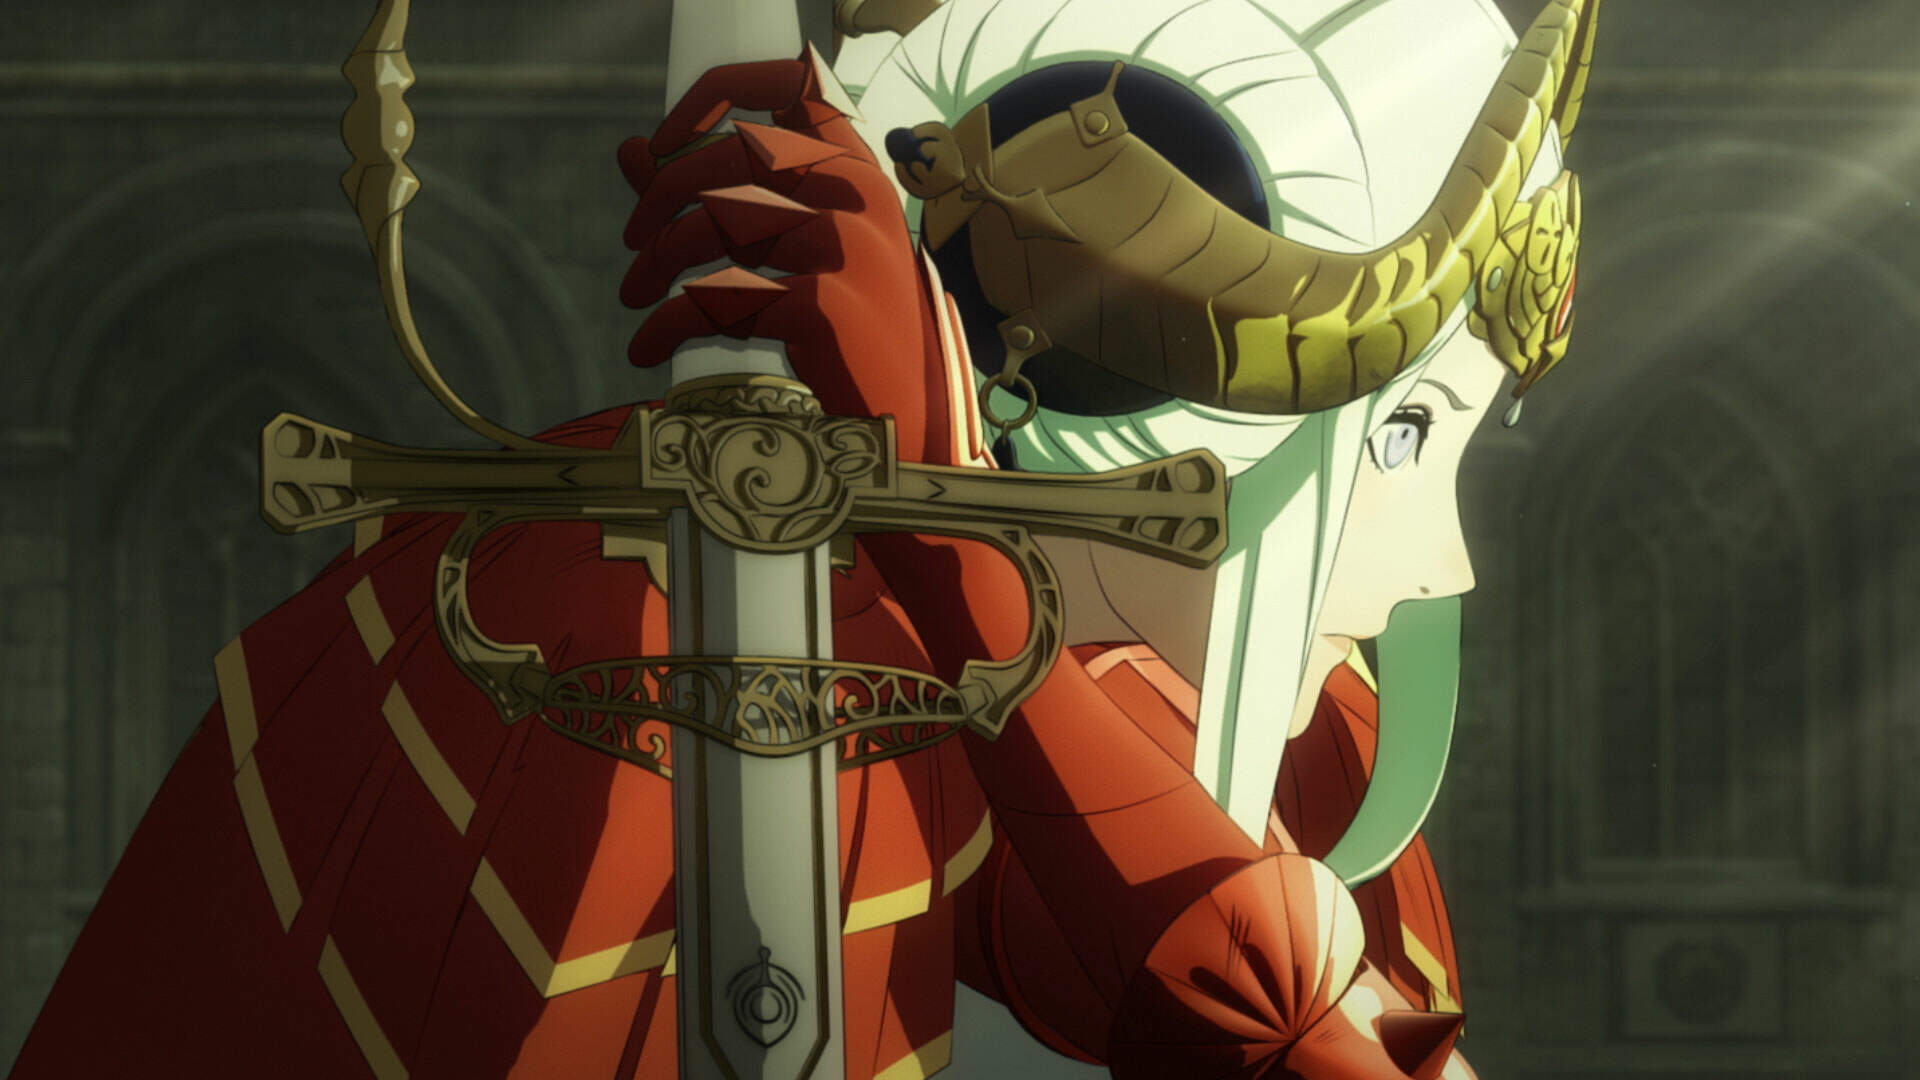 Fire Emblem: Three Houses Sets Several Series Sales Records